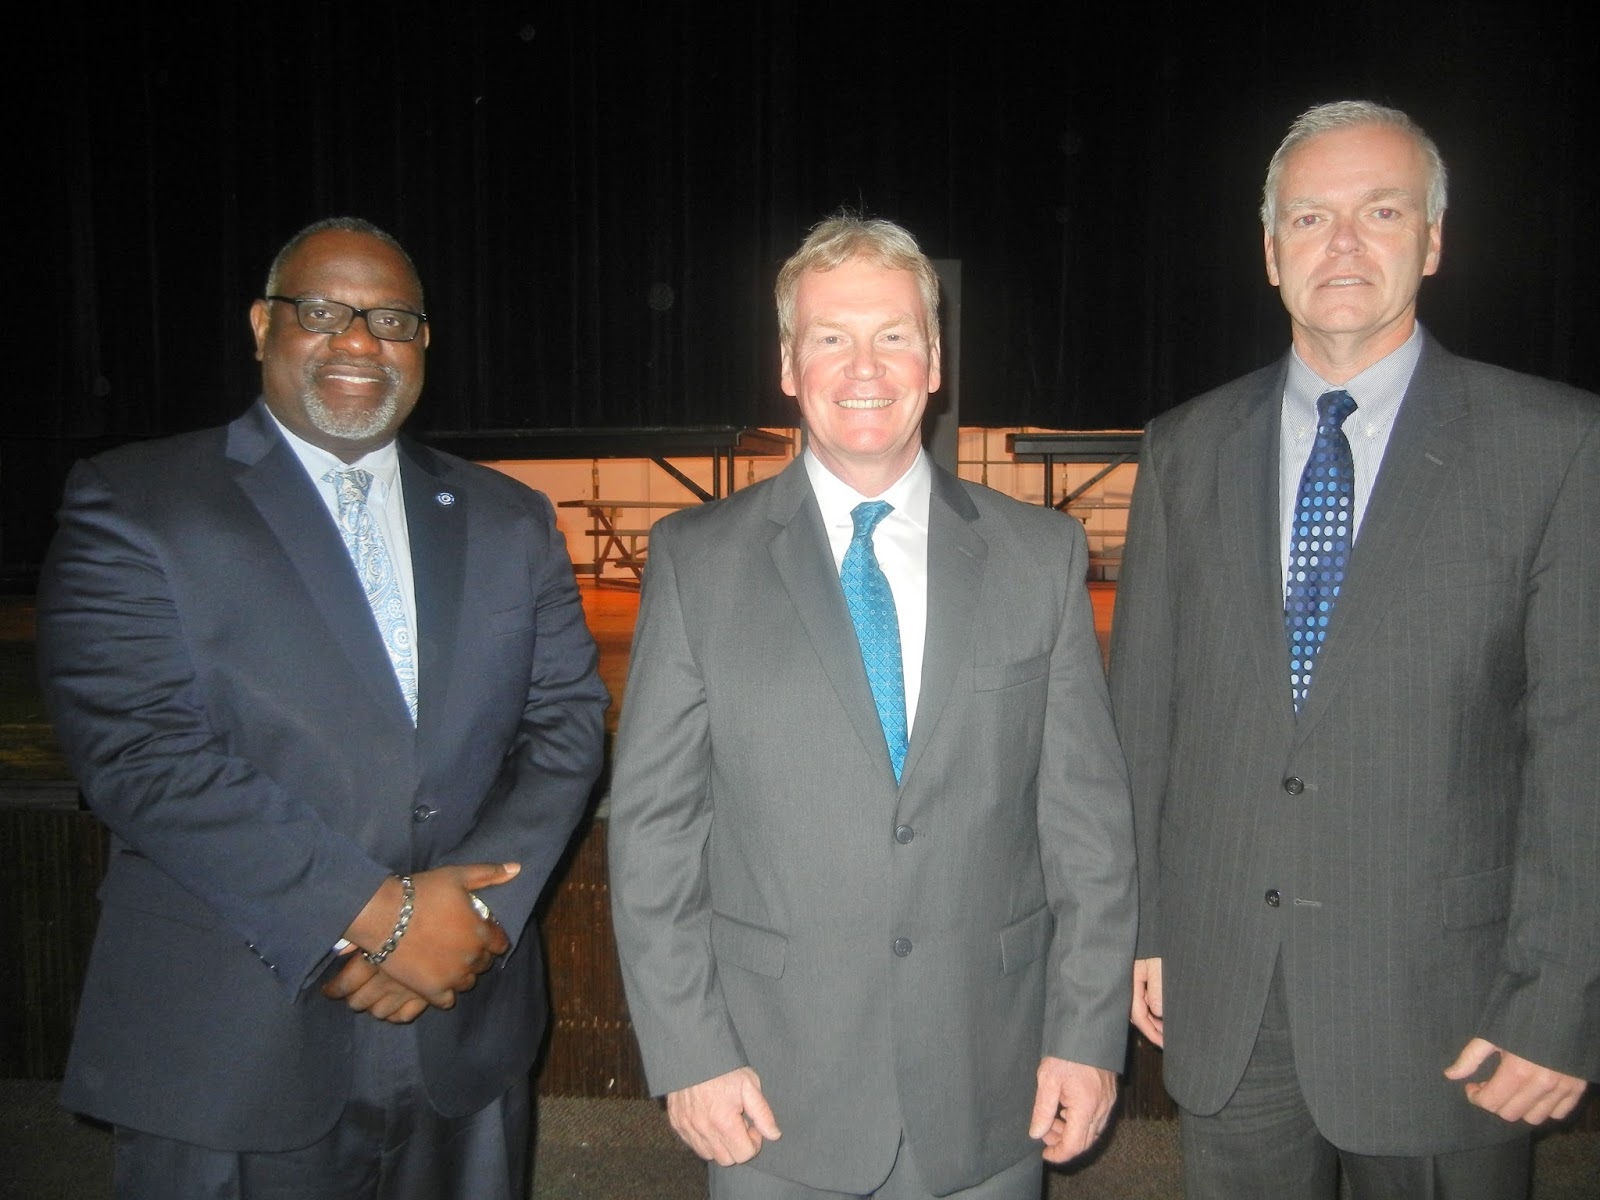 ms b the good news chester high achievement mentoring program left to right george b dawson deputy da and chief of the anti violence task force delaware county district attorney jack whelan and chief joseph ryan